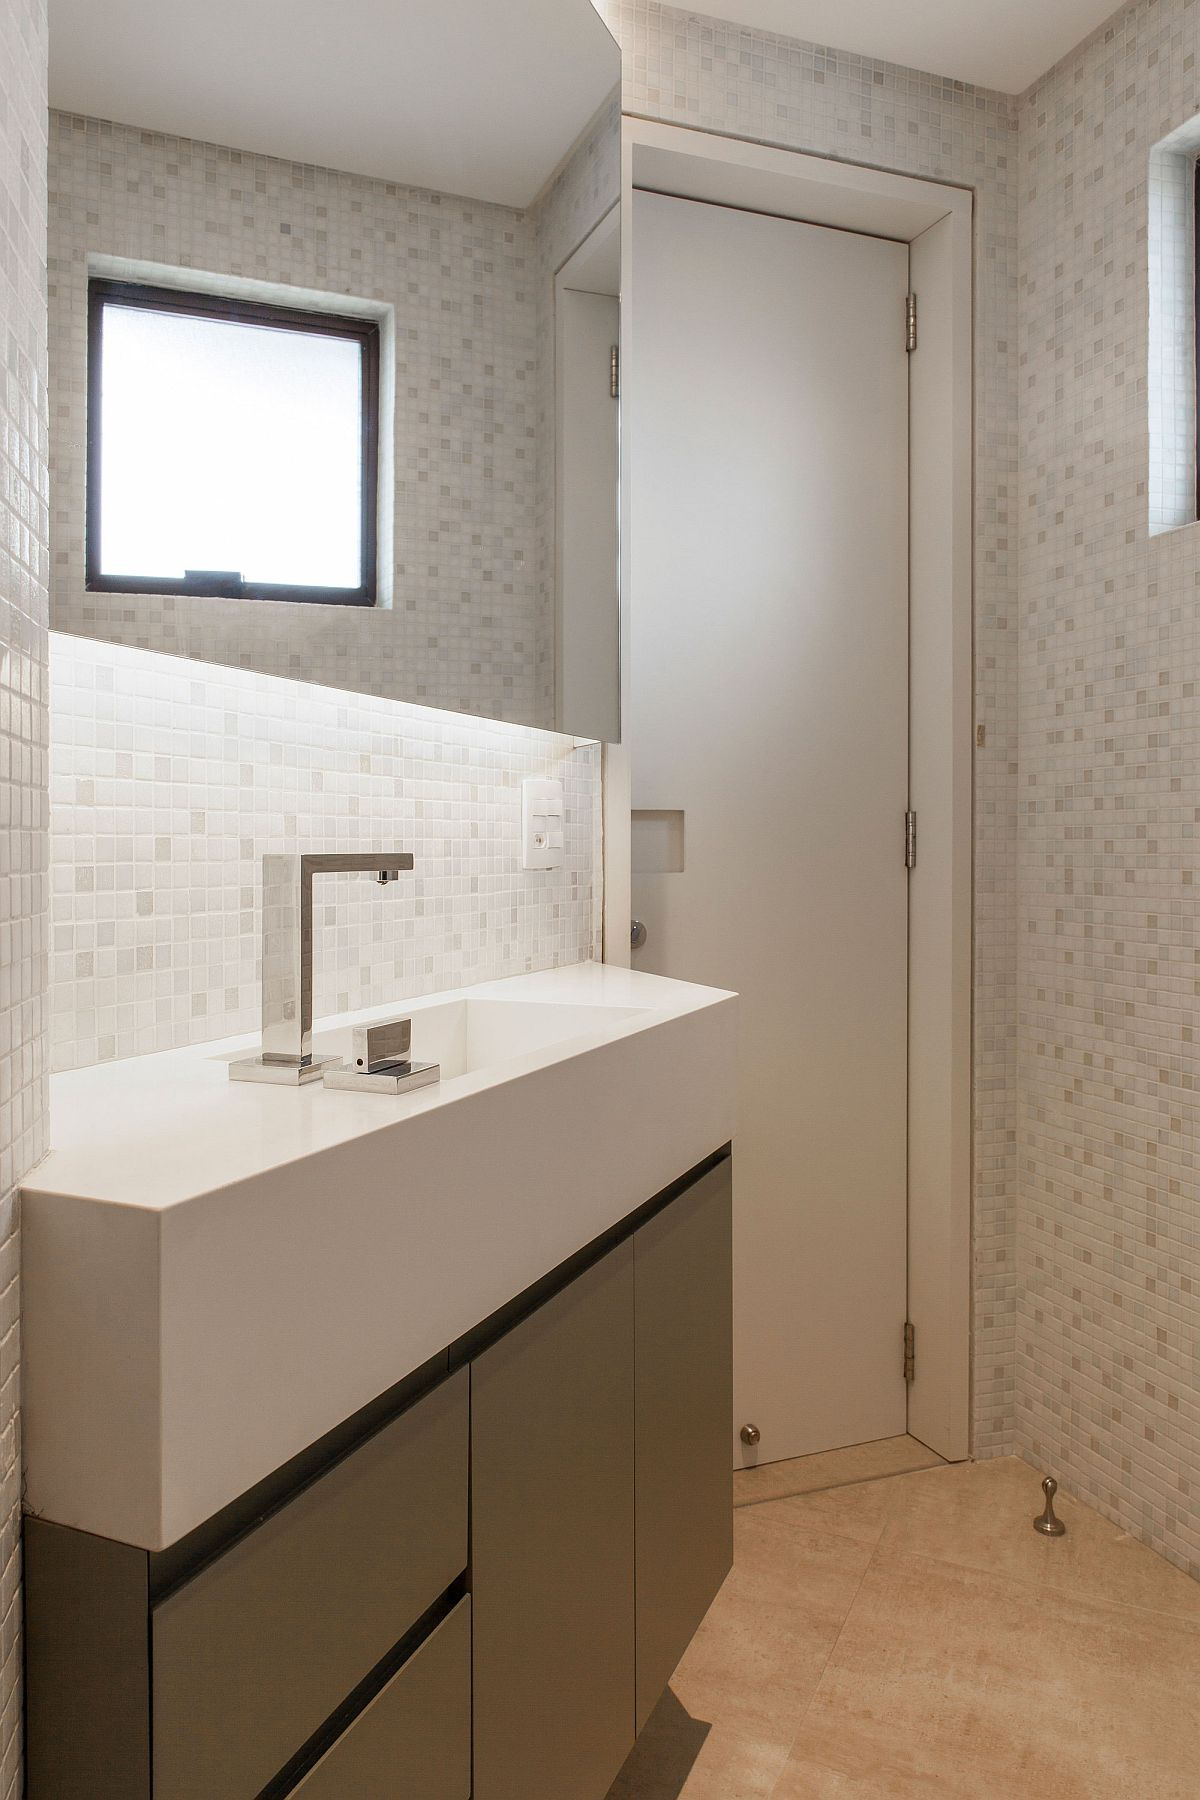 Innovative bathroom design maximizes space by utilizing corners